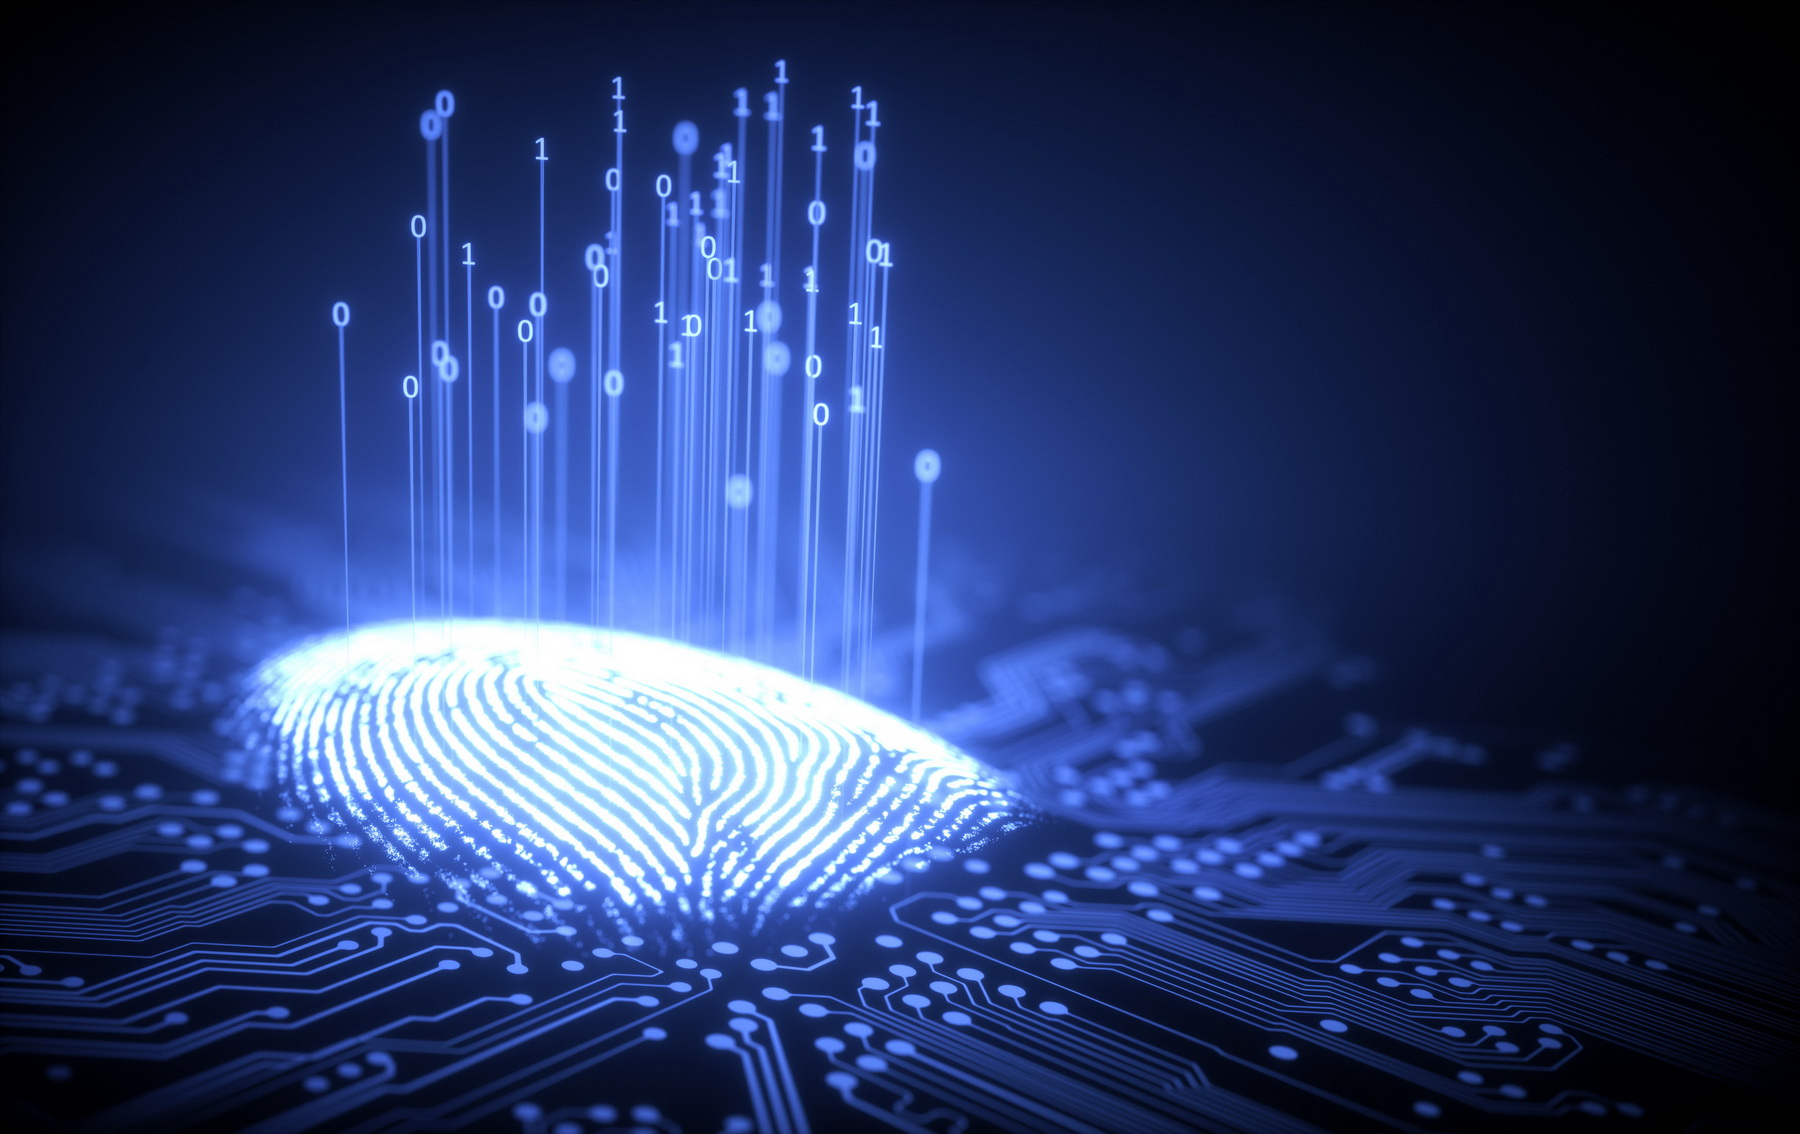 Neural networks have been taught to forge fingerprints